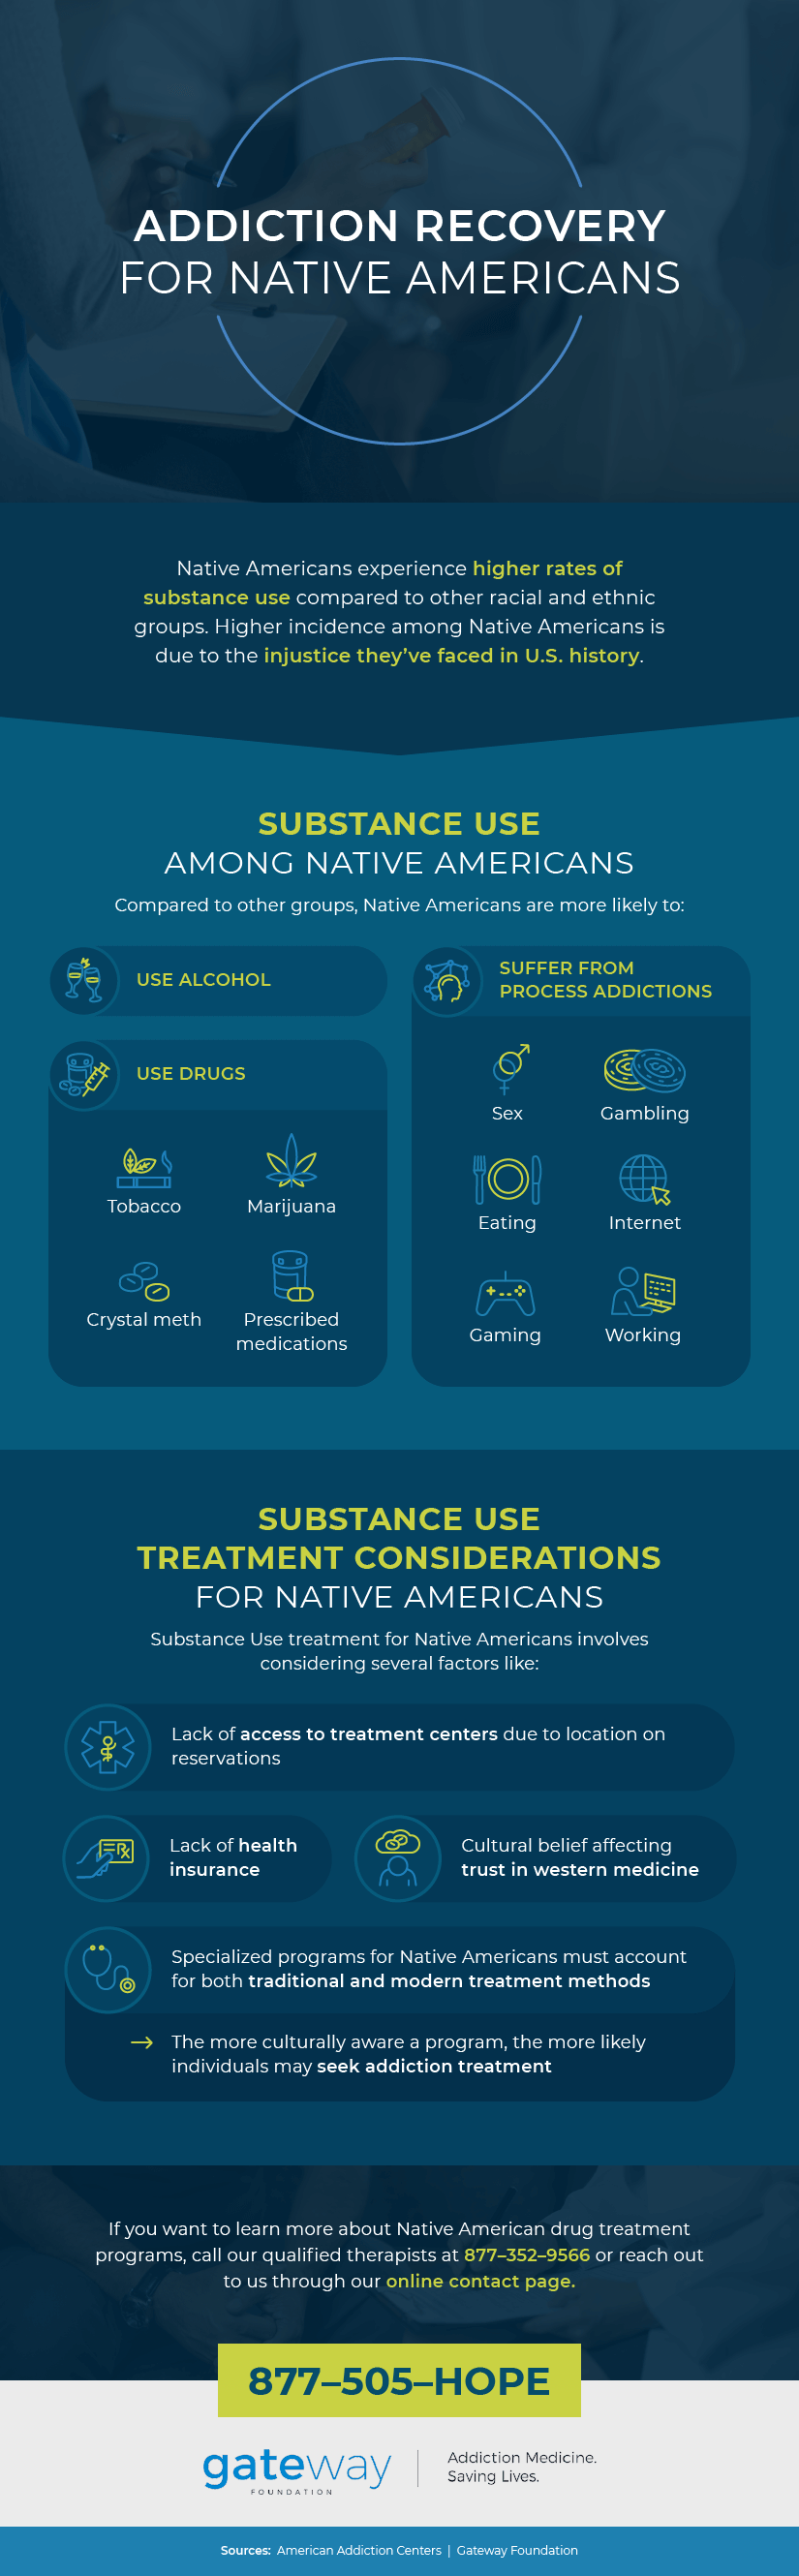 addiction recovery for native americans